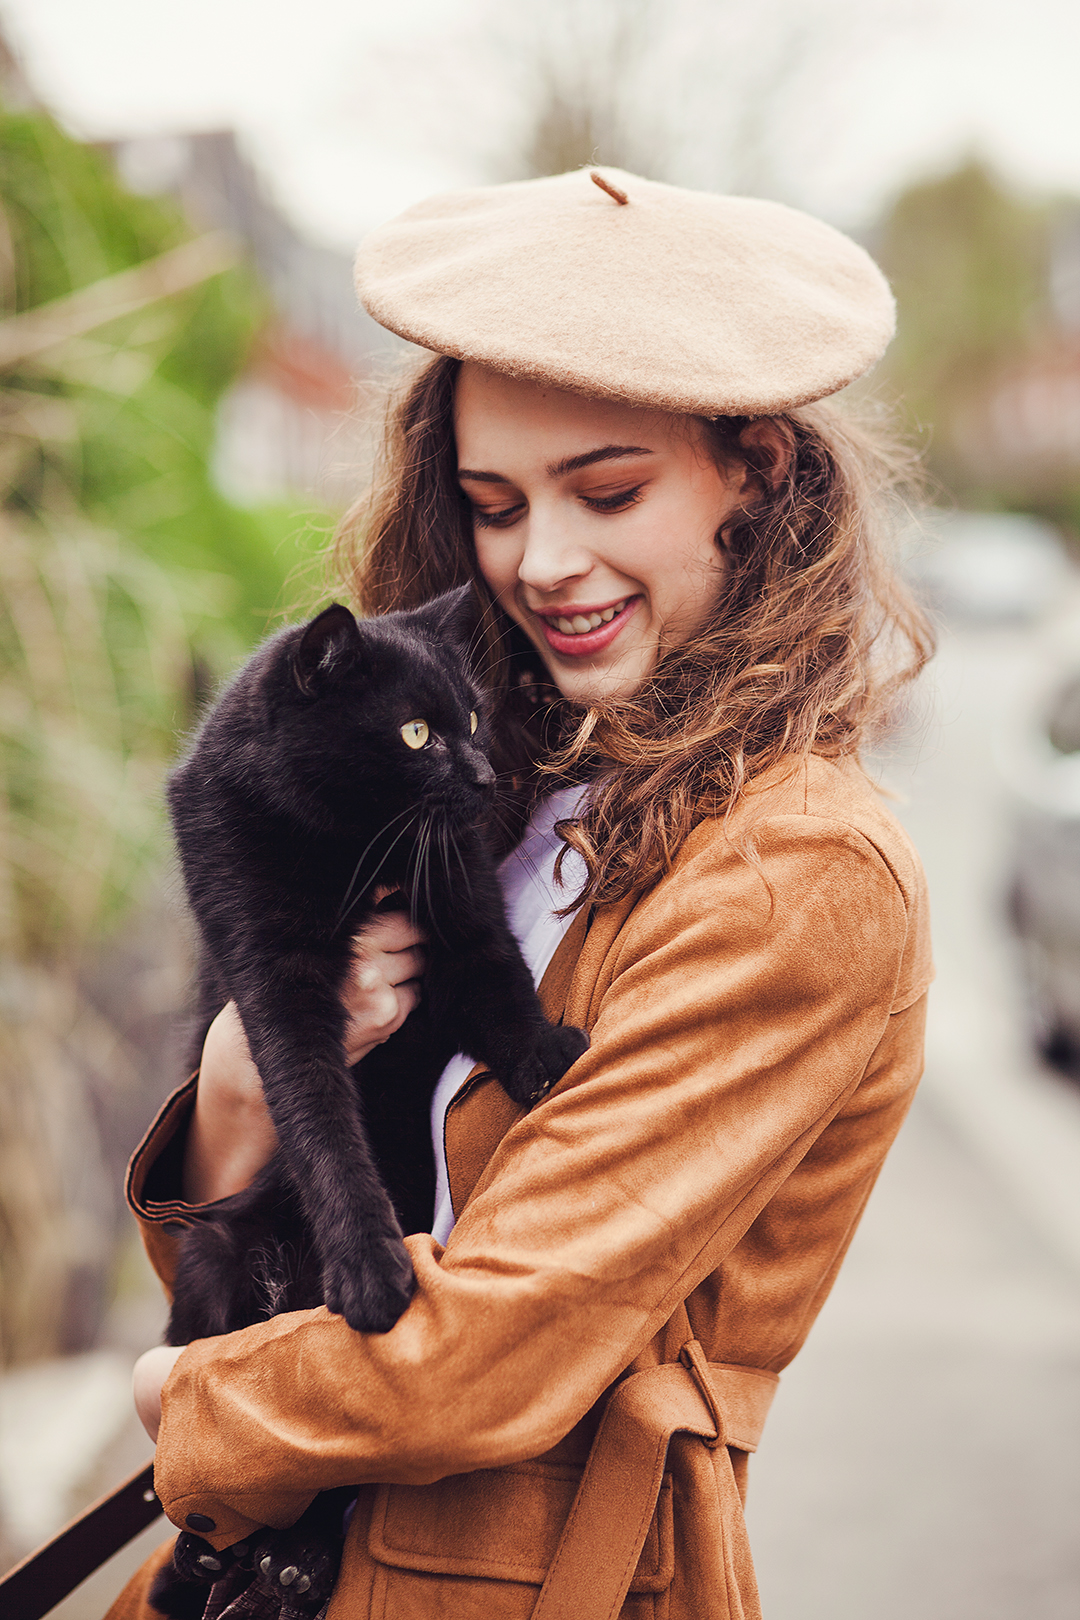 a girl with beret holding a black cat. Angel @ PRM agency model test by Ailera Stone